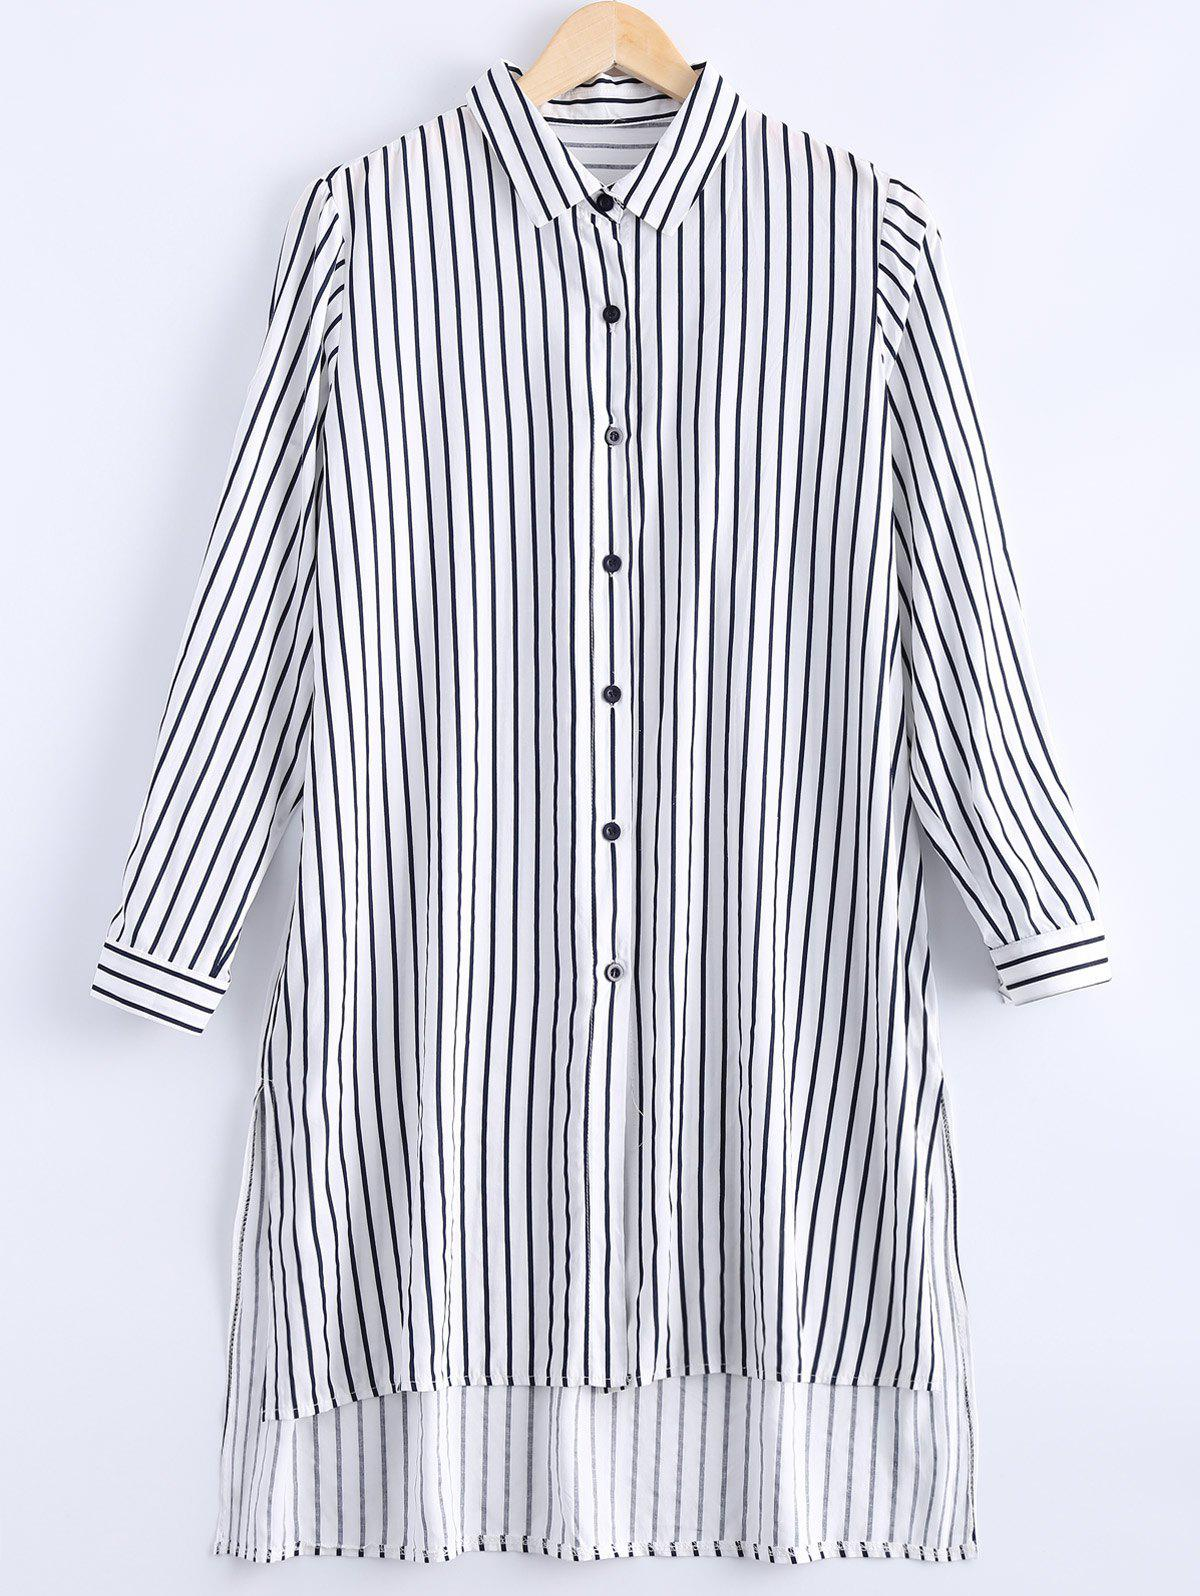 Casual Women's Asymmetric Botton Down Collar Striped Shirt Dress - DEEP BLUE ONE SIZE(FIT SIZE XS TO M)